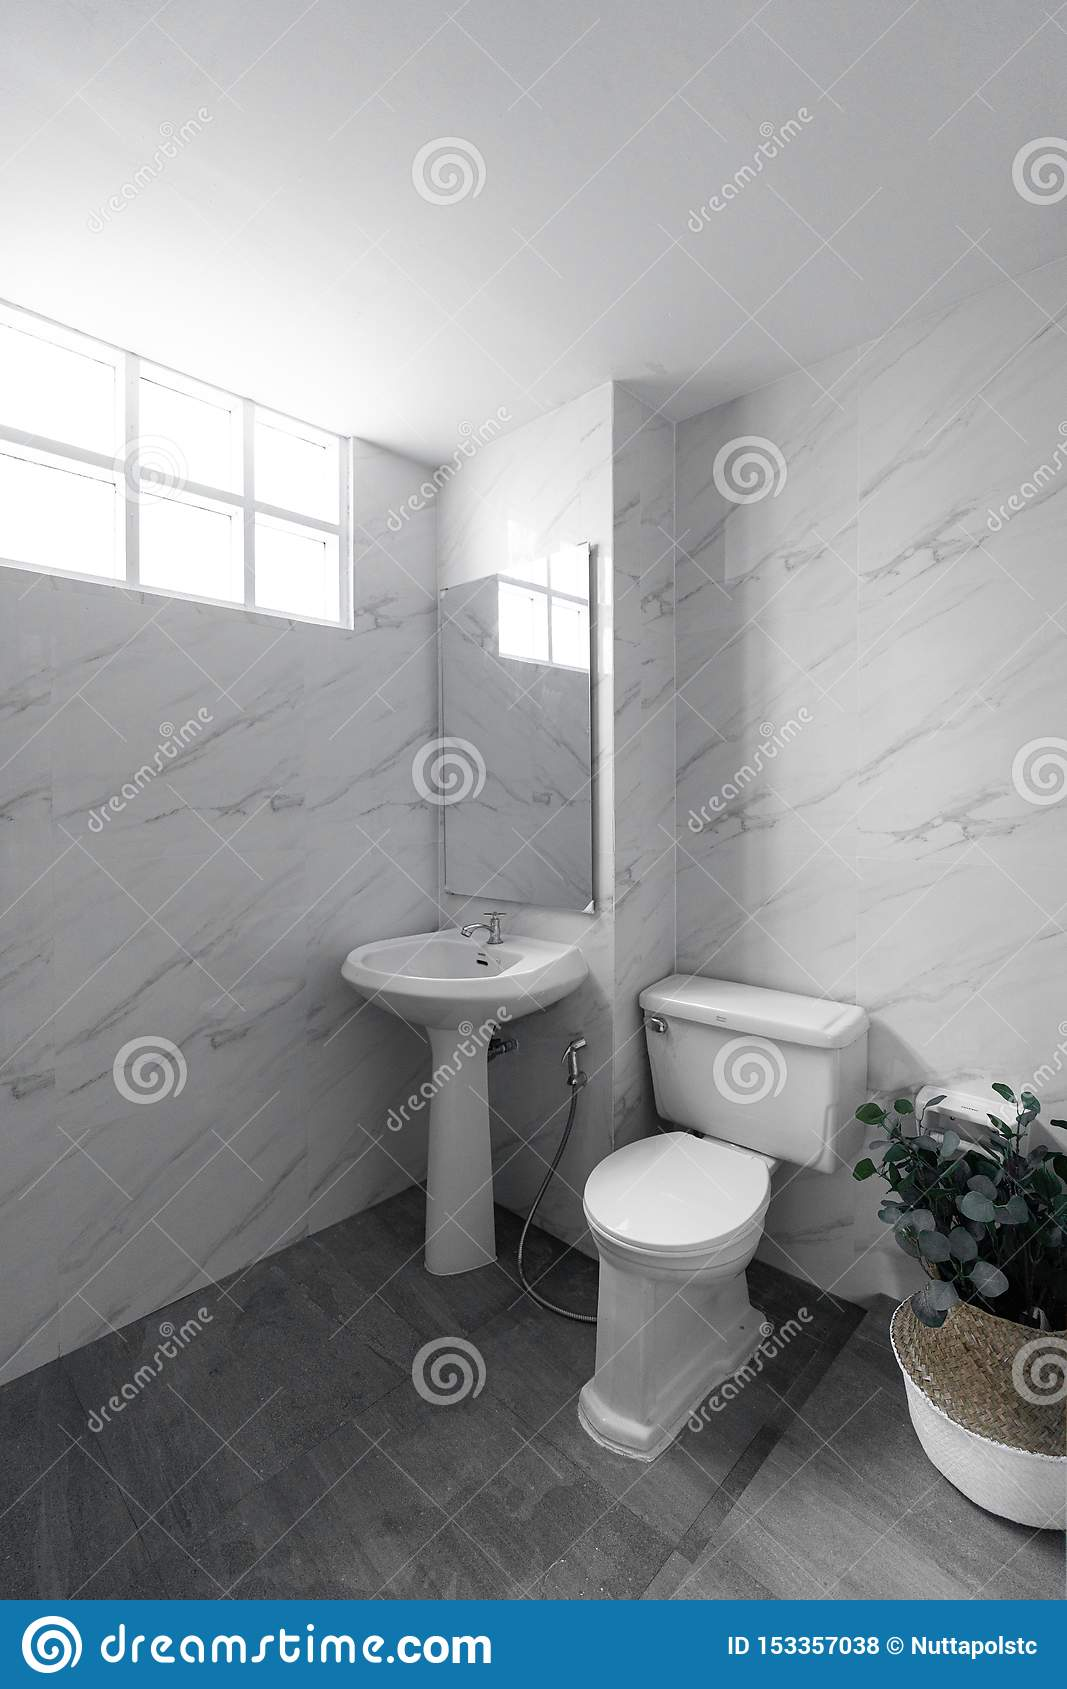 White Marble Tile Wall And Gray Tile Flooring Bathroom In Natural Light Scene Stock Photo Image Of Apartment Horizontal 153357038